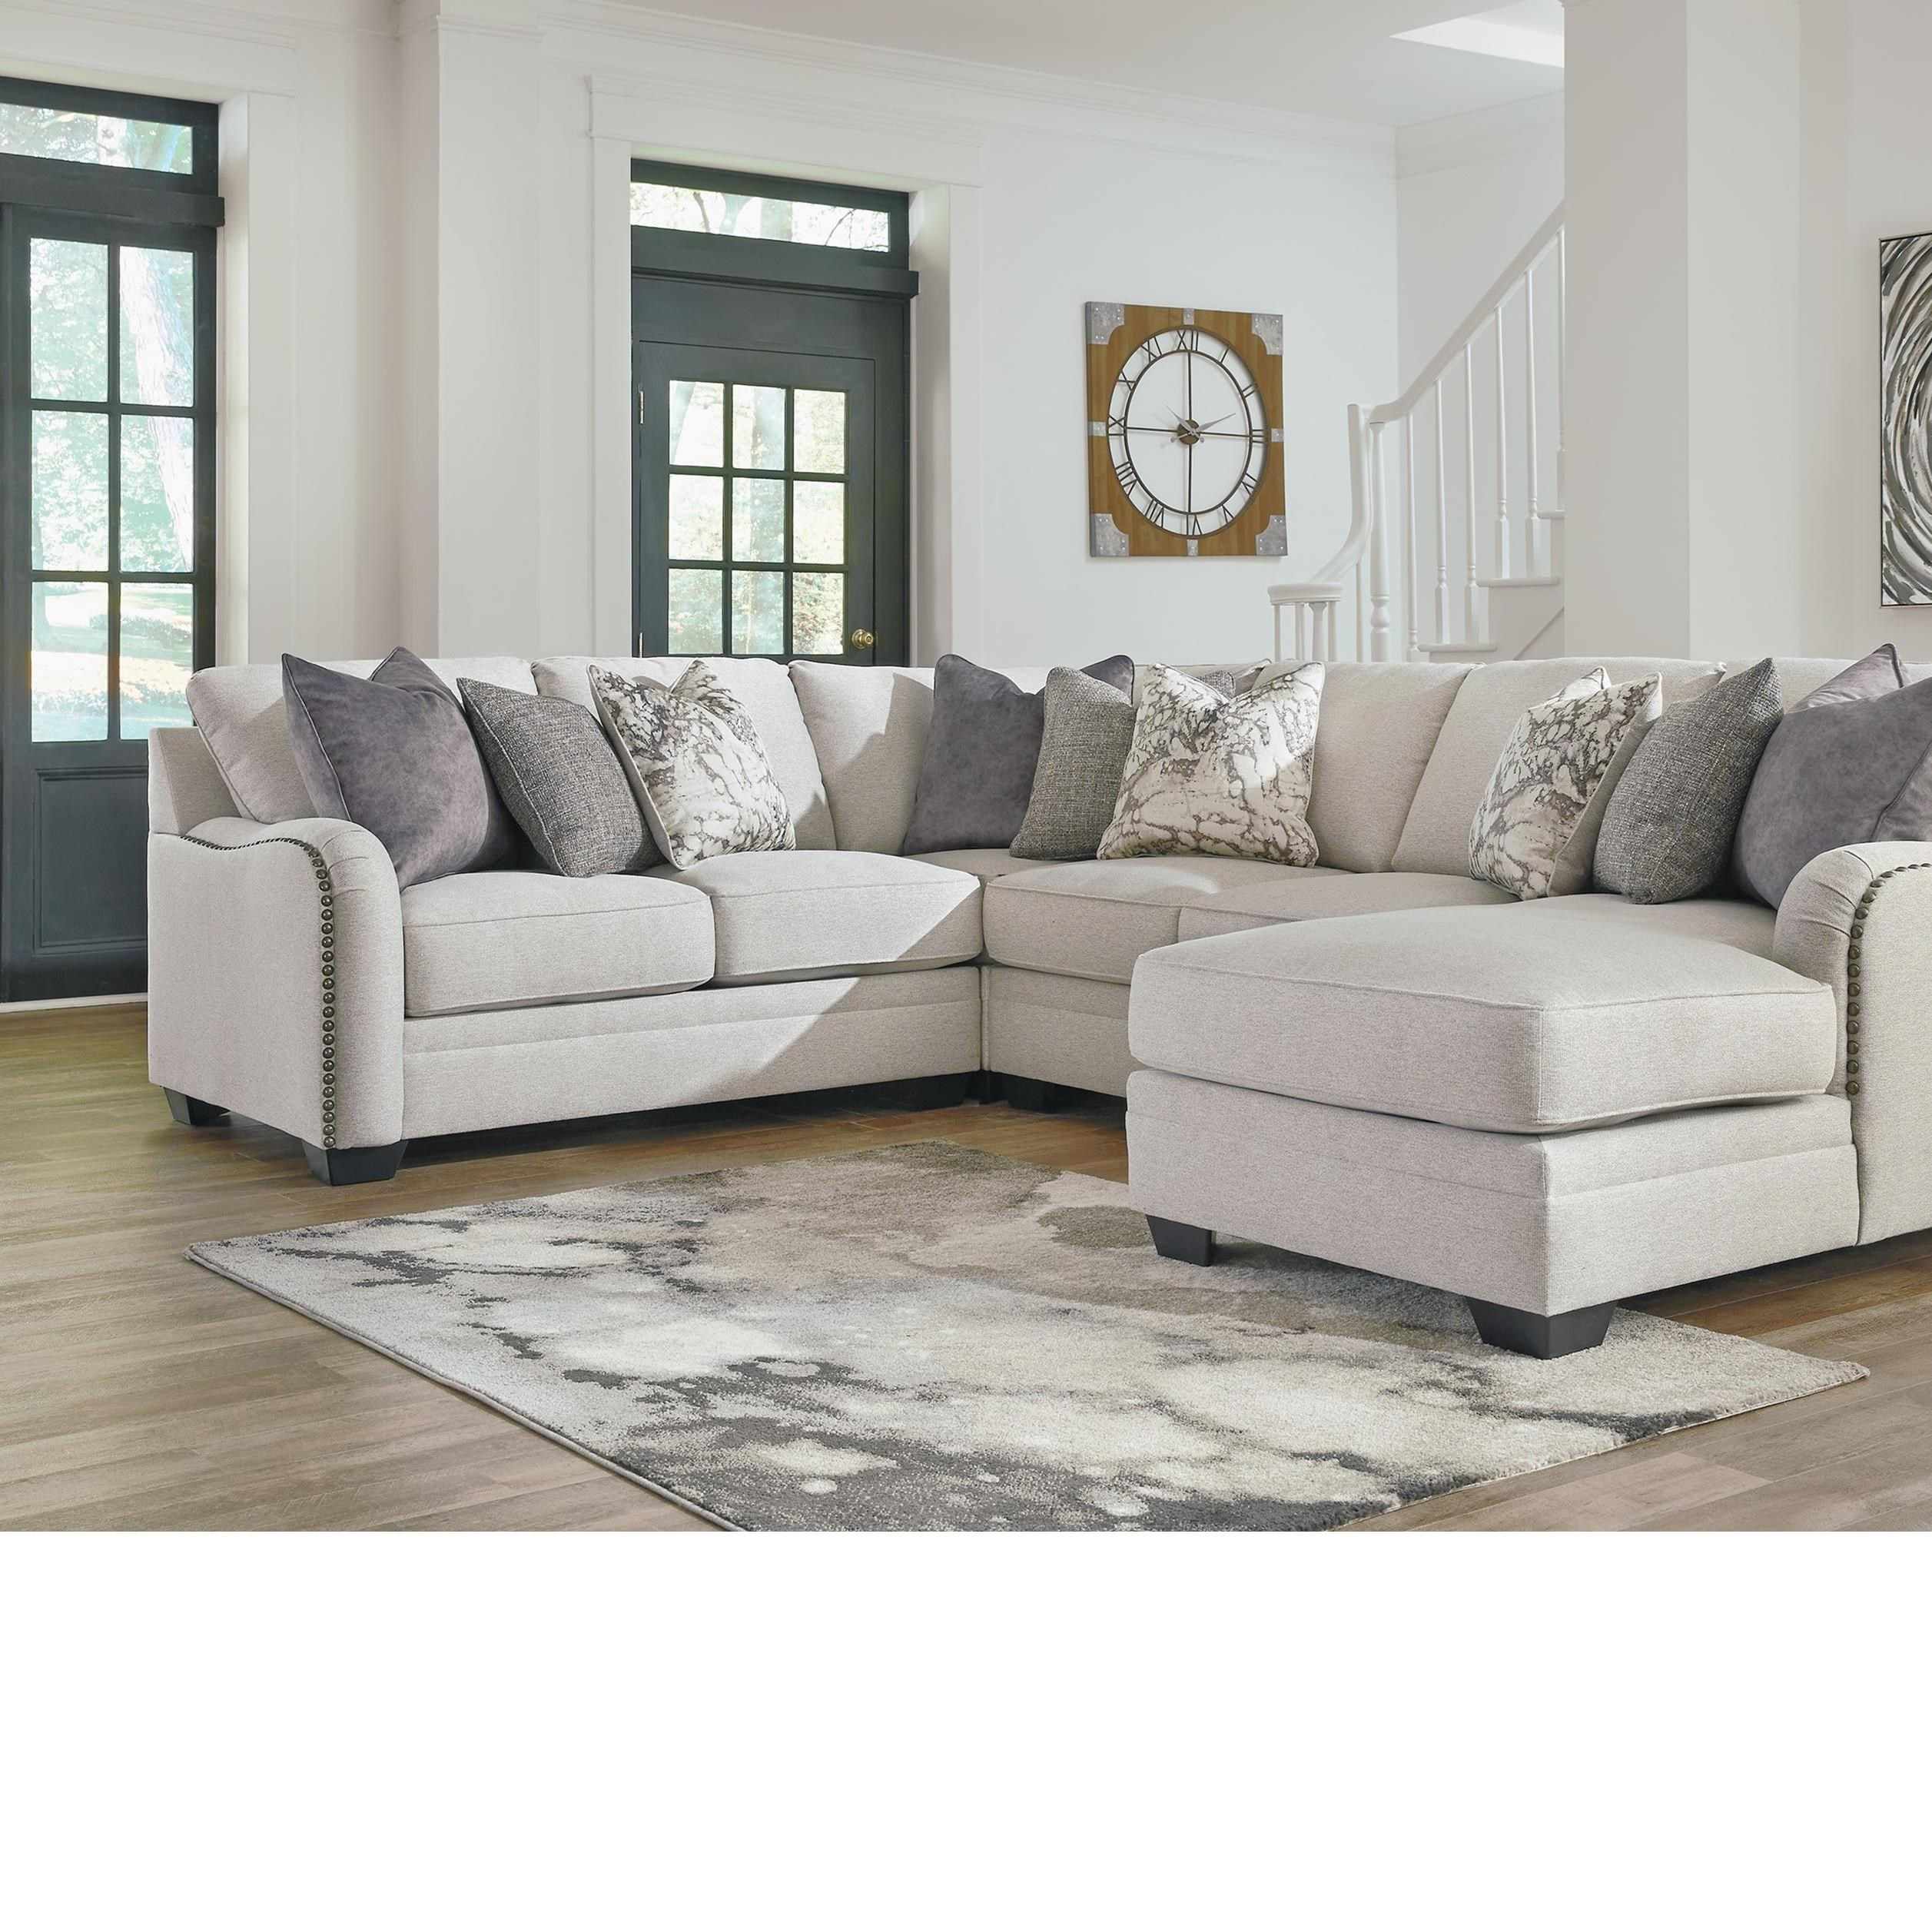 sectional sofas under 1000 00 queen size sofa benchcraft dellara casual 4 piece with right ...